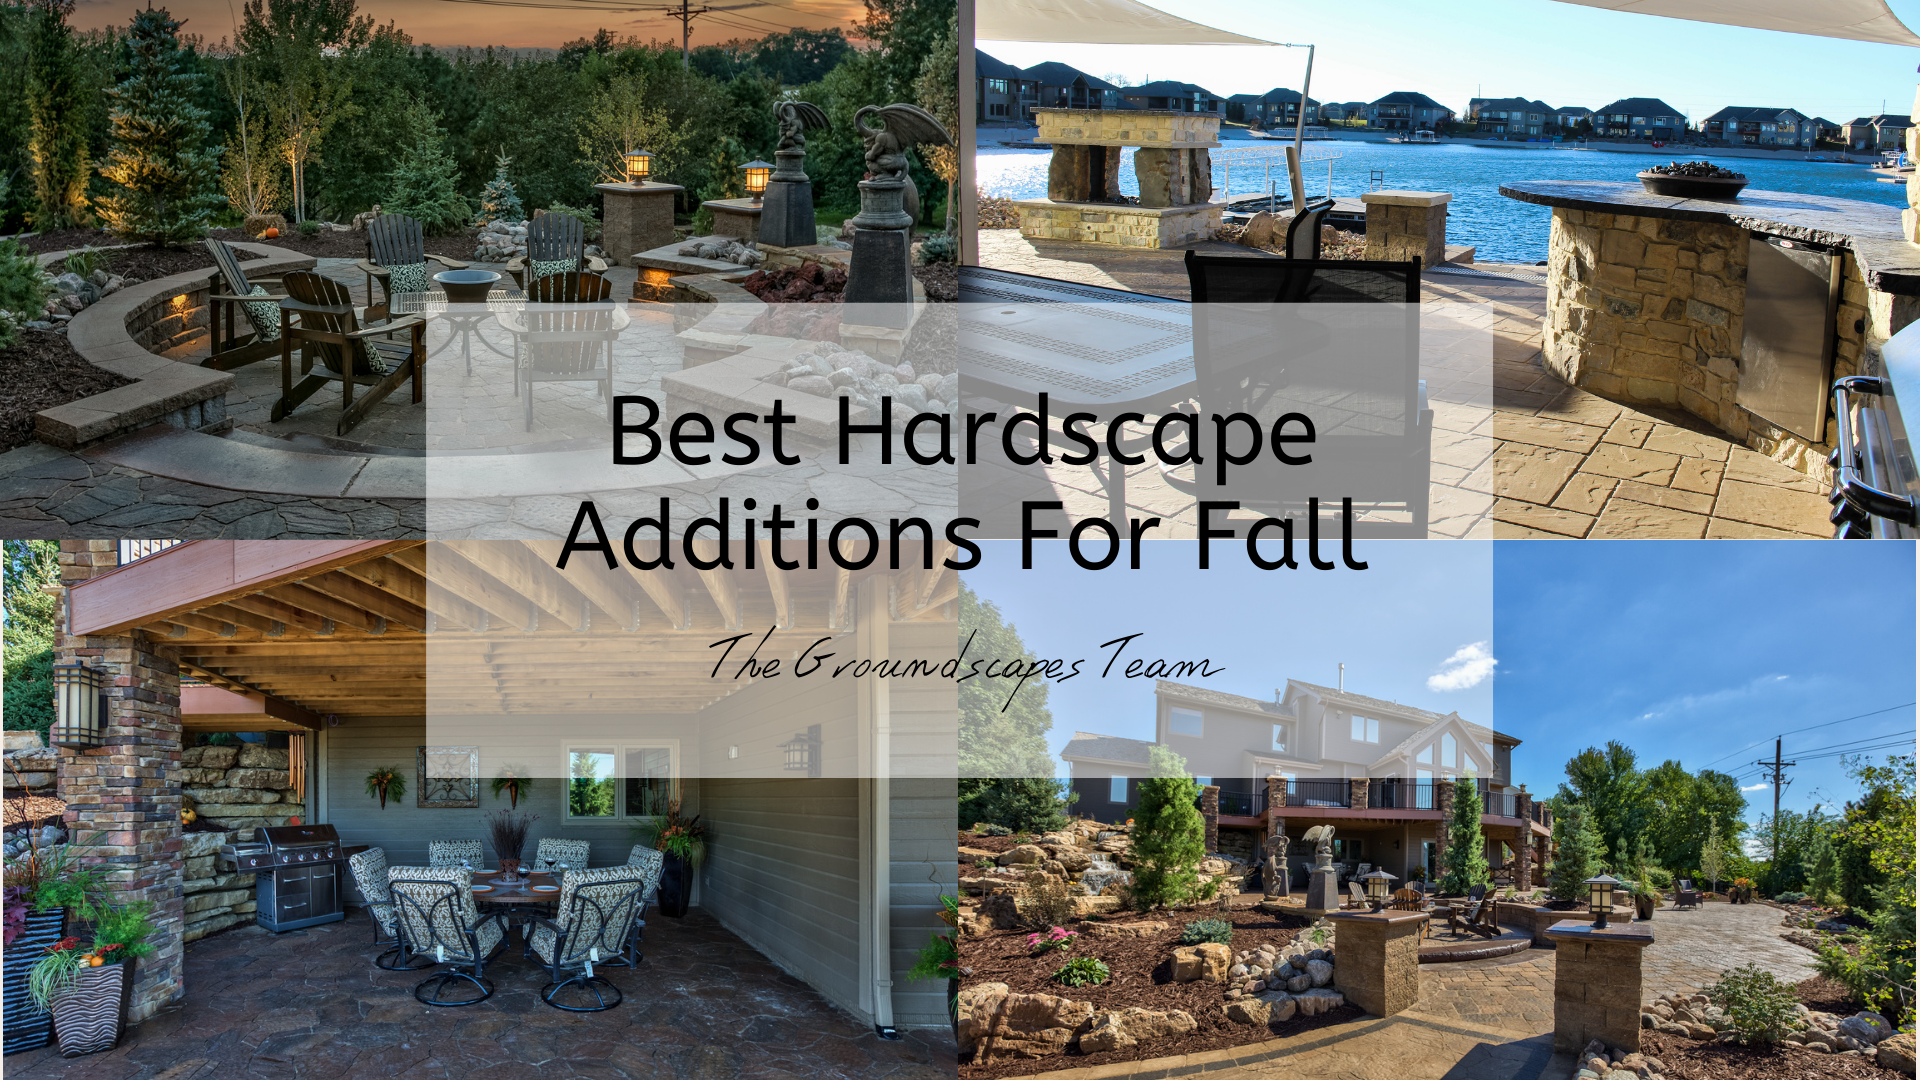 Best Hardscape Additions For Fall